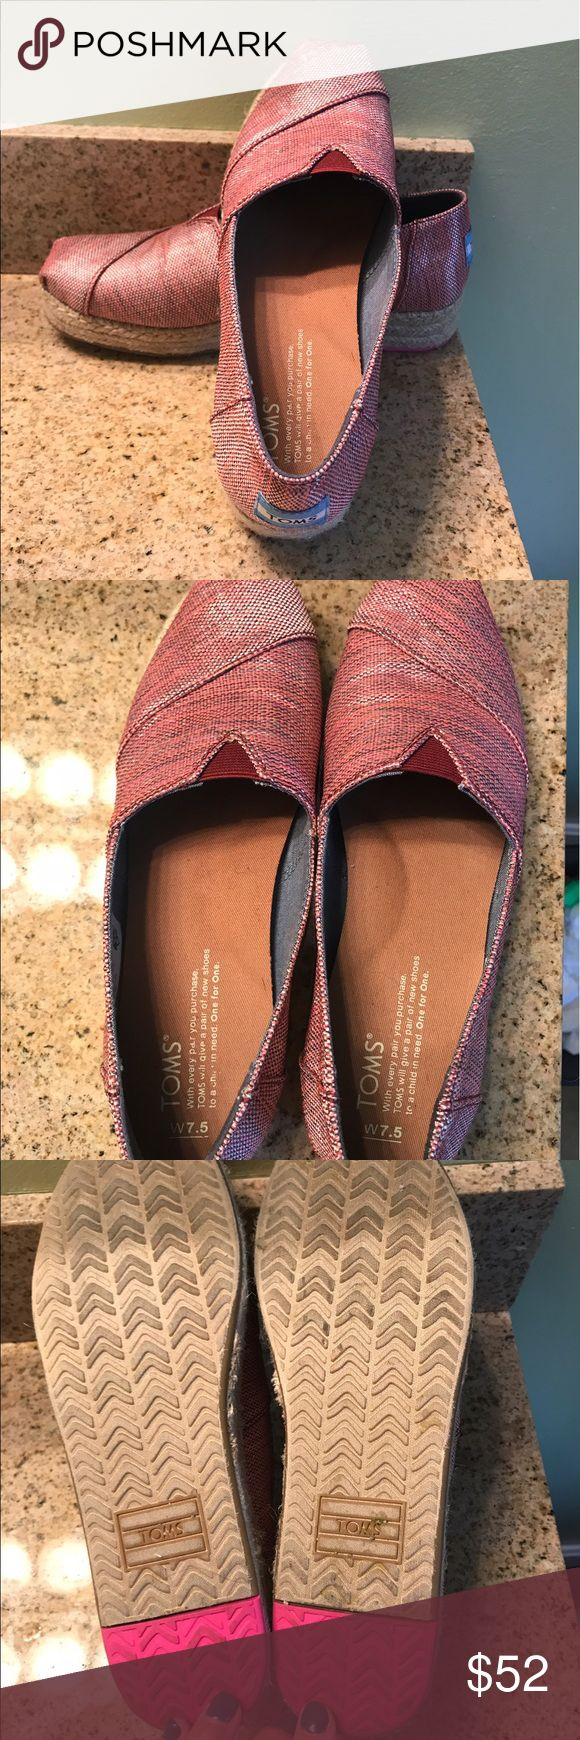 TOMS ESPADRILLES SIZE 7.5 MAGENTA TOMS SIZE 7.5 ESPADRILLES MAGENTA - WORN ONCE. In perfect condition, flawless. TOMS Shoes Espadrilles